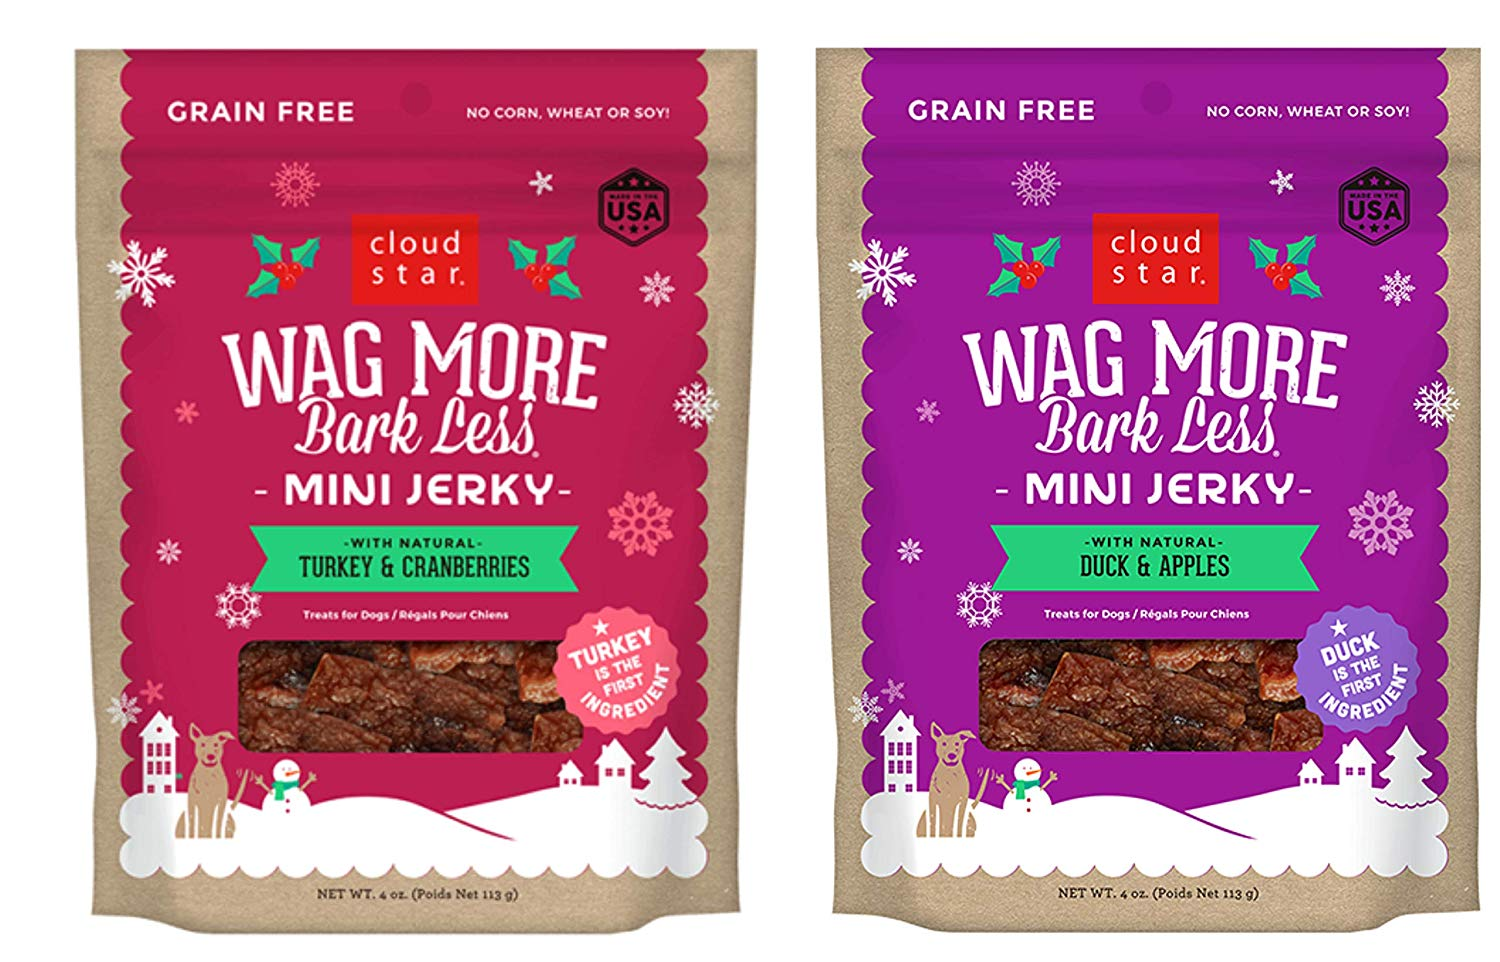 Cloud Star Wag More Bark Less Holiday Mini Jerky Treats for Dogs in 2 Flavors: (1) Turkey & Cranberries and (1) Duck & Apples (2 Bags Total, 4 Ounces Each) Plus Silicone Can Cover. Delicious Meat & Fruit Combinations No Grain, Gluten Corn, Soy or Artificial Flavors and Colors Made in the USA Mini-Sized, Great for All Dogs.